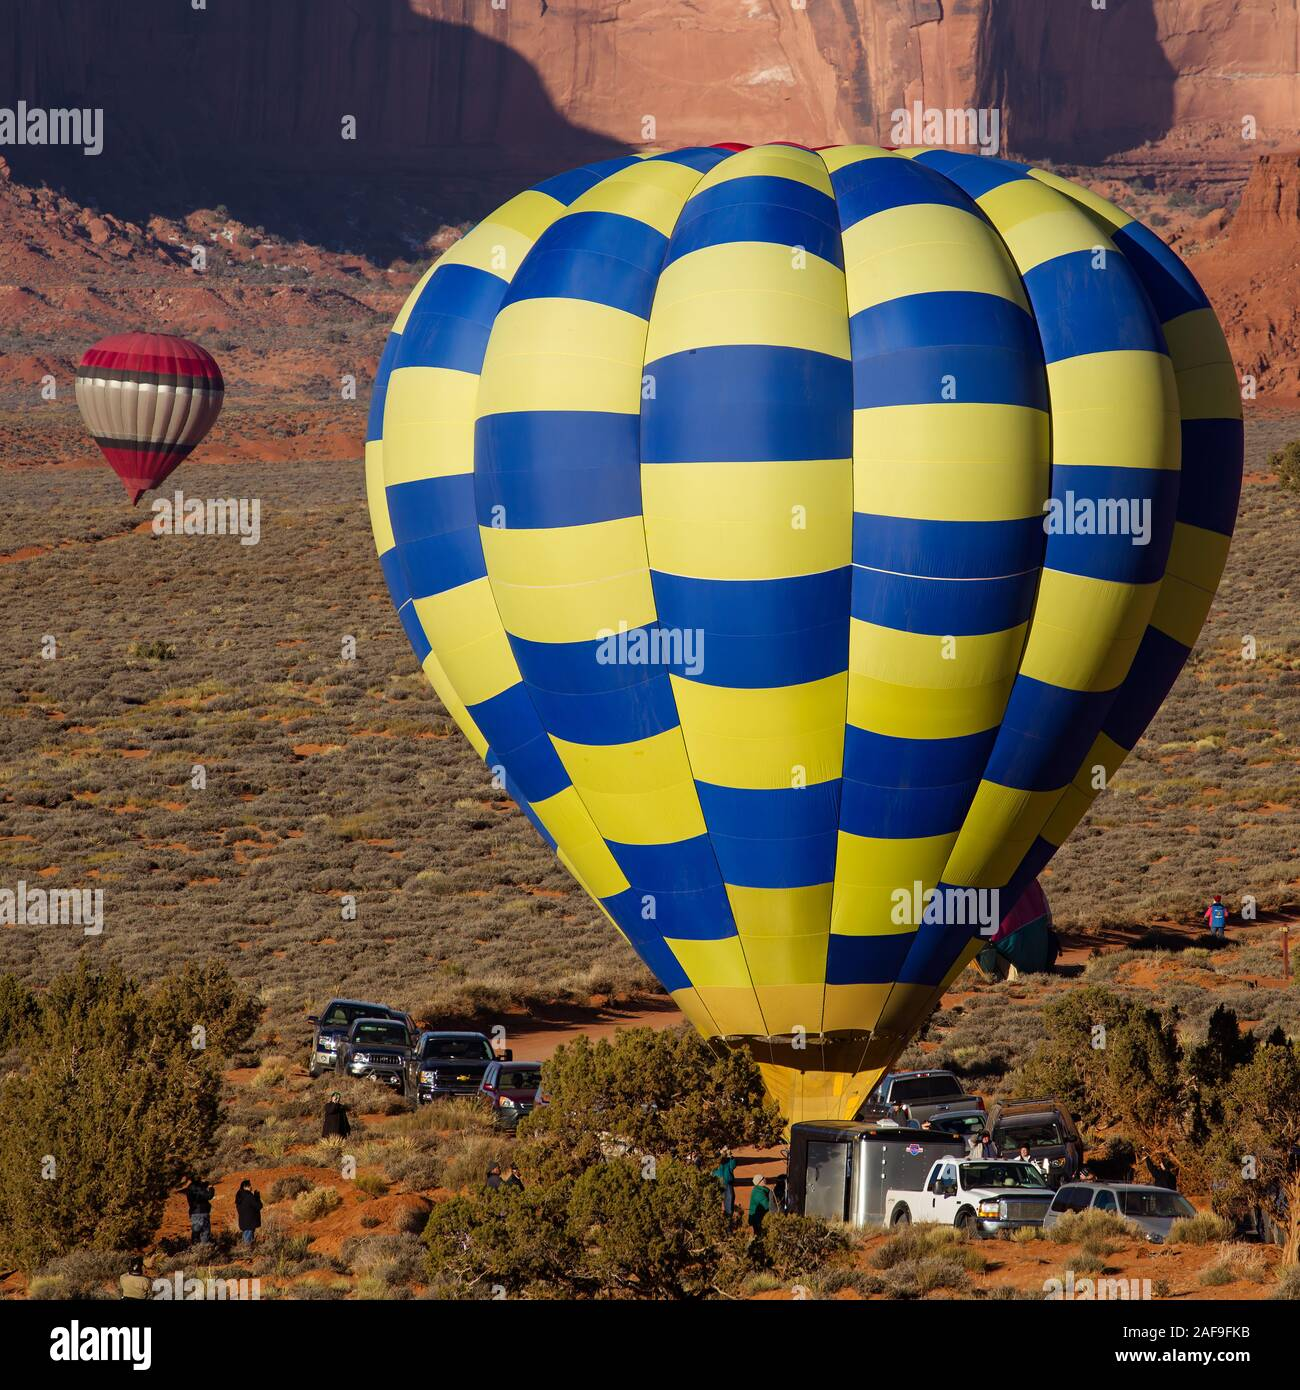 A team prepares for launch in the Monument Valley Navajo Tribal Park in Arizona.  In the background is another ballon ready to take flight. Stock Photo